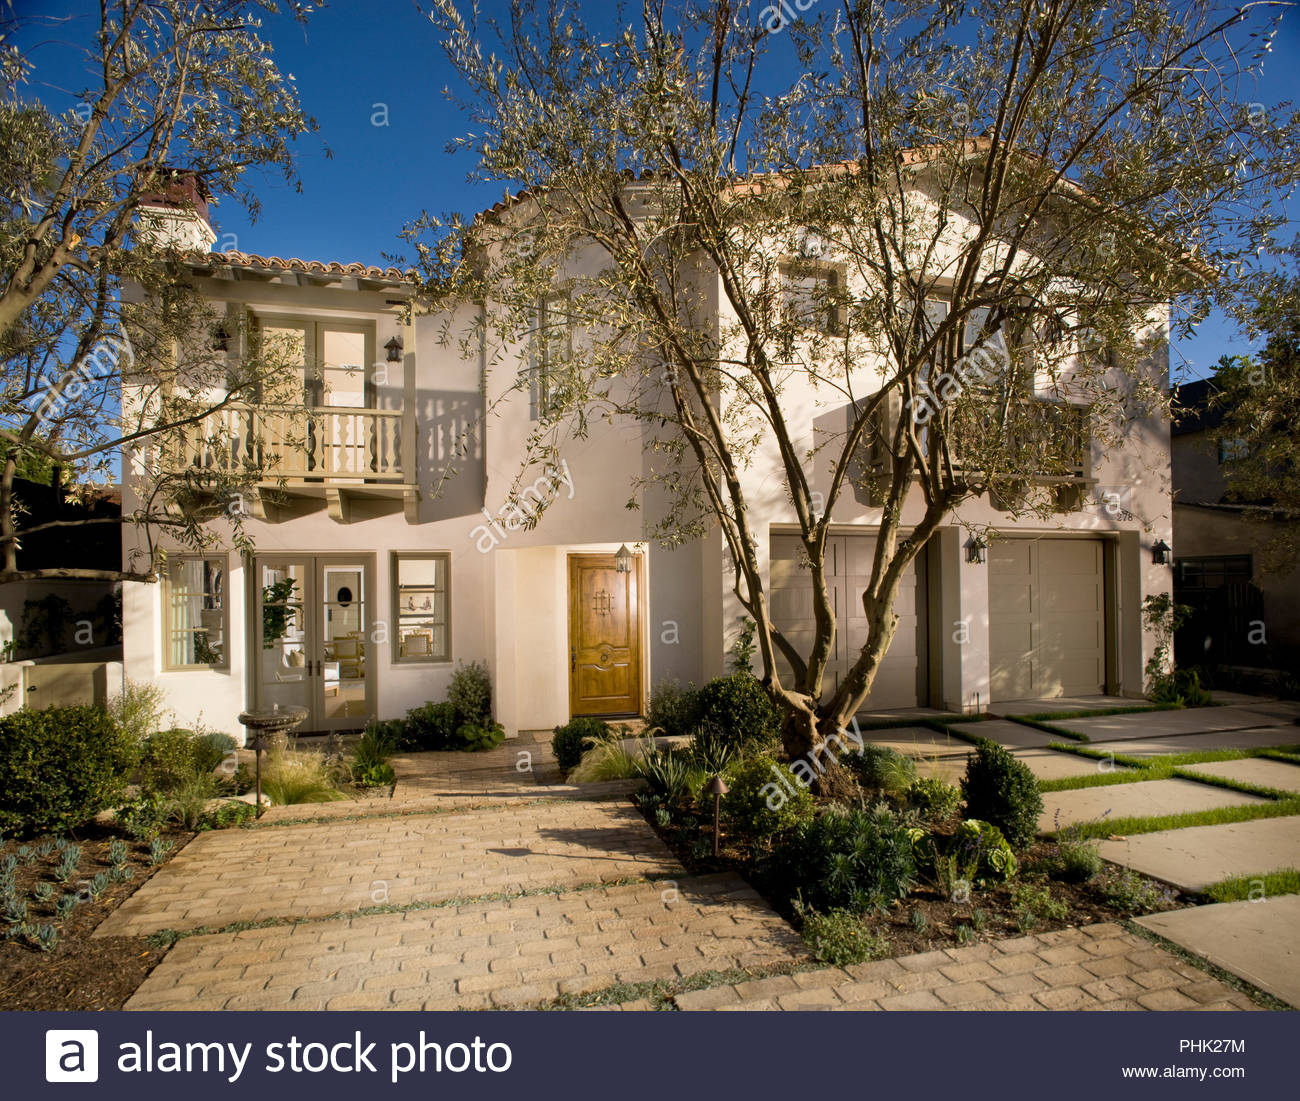 Trees in front of house - Stock Image